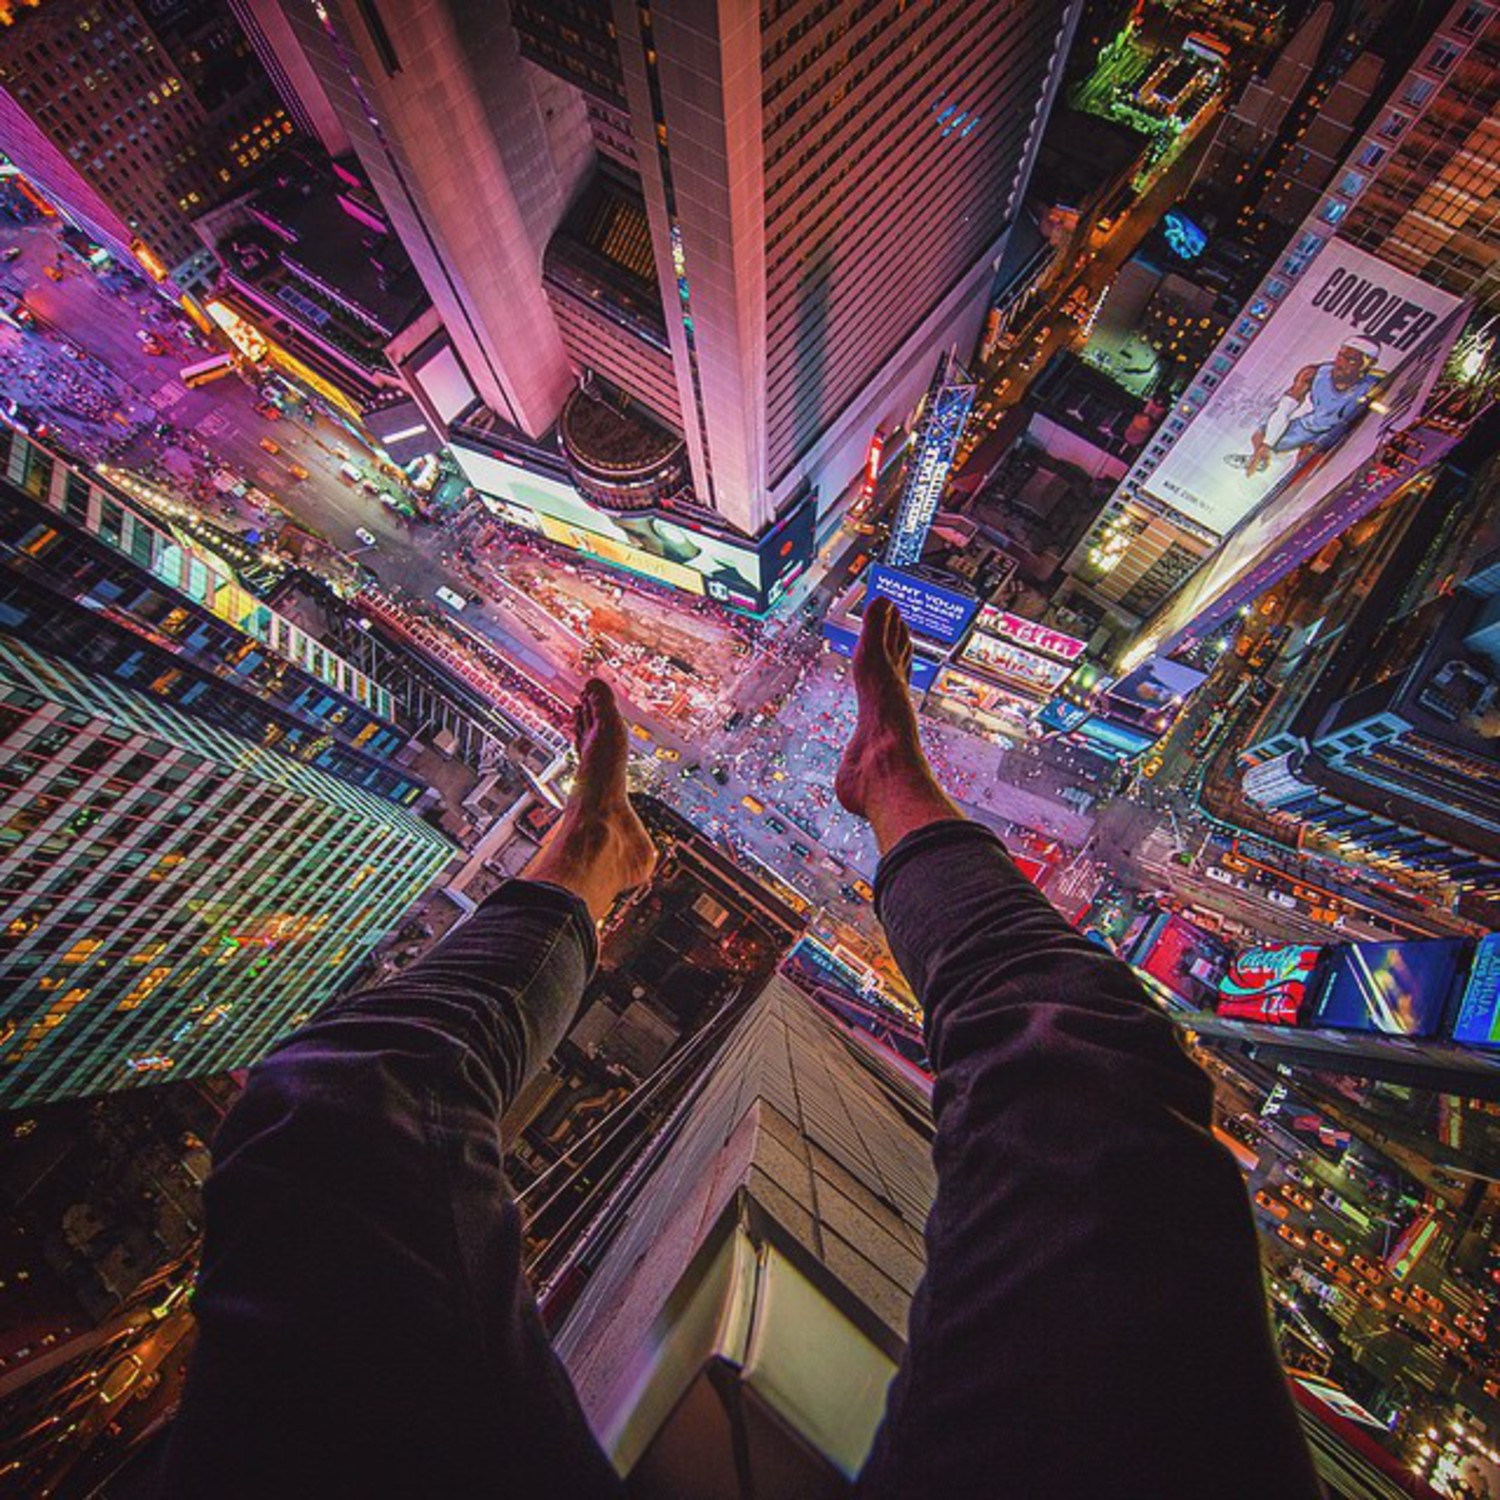 • #BareFeetFirst •  So I'm starting a new hashtag from today called #BareFeetFirst - it's pretty self explanatory but incase your not sure, forget the shoes next time you shoot your classic looking down shots and go bare (only your shoes and socks though - don't need to see anything else) 😂🙌 This is me above Times Square last night shooting with @mjinnyc 😍